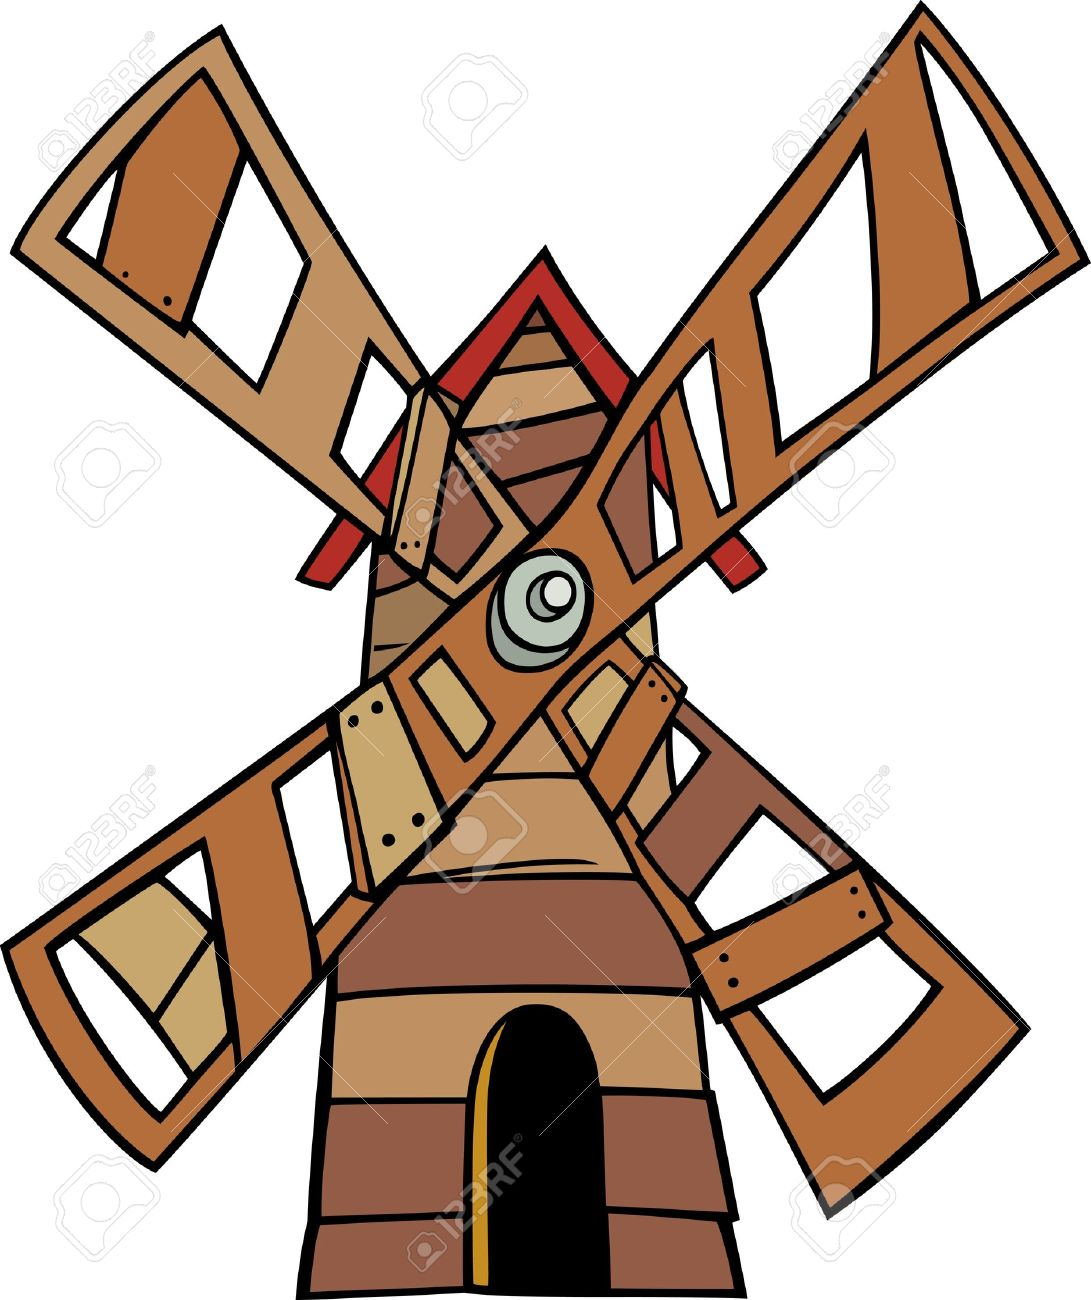 Windmill clipart #12, Download drawings